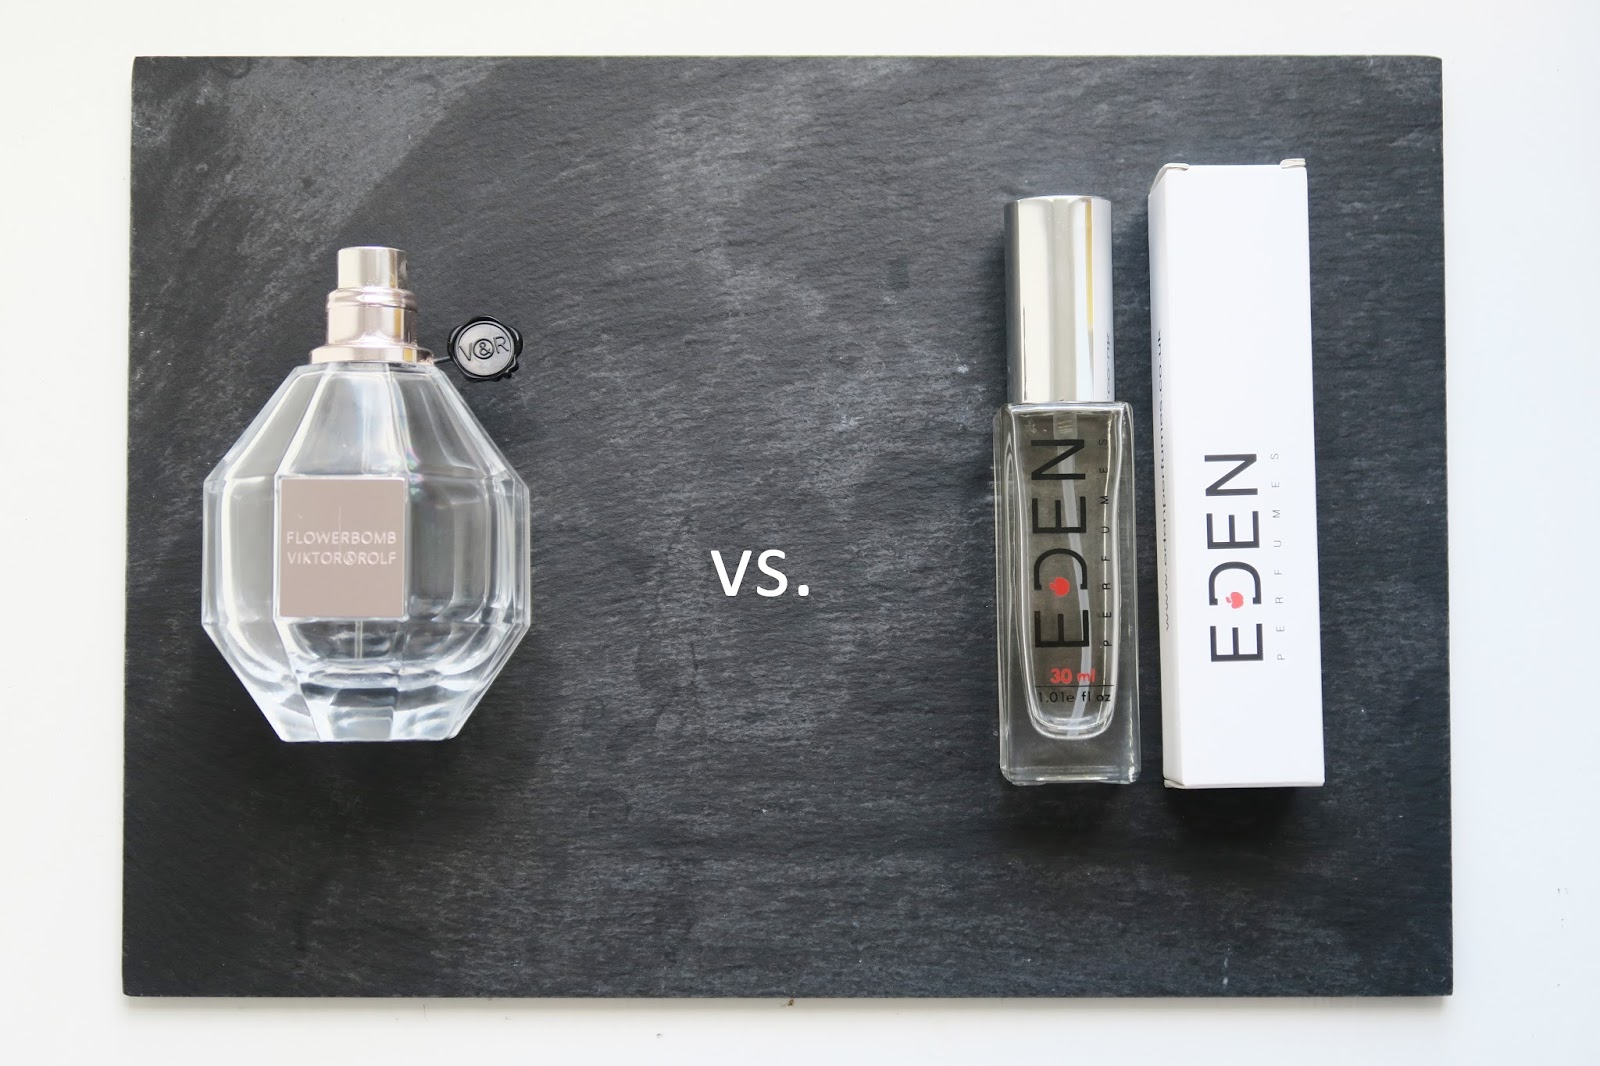 Eden Perfumes Cruelty Free Flowerbomb Dupe Review